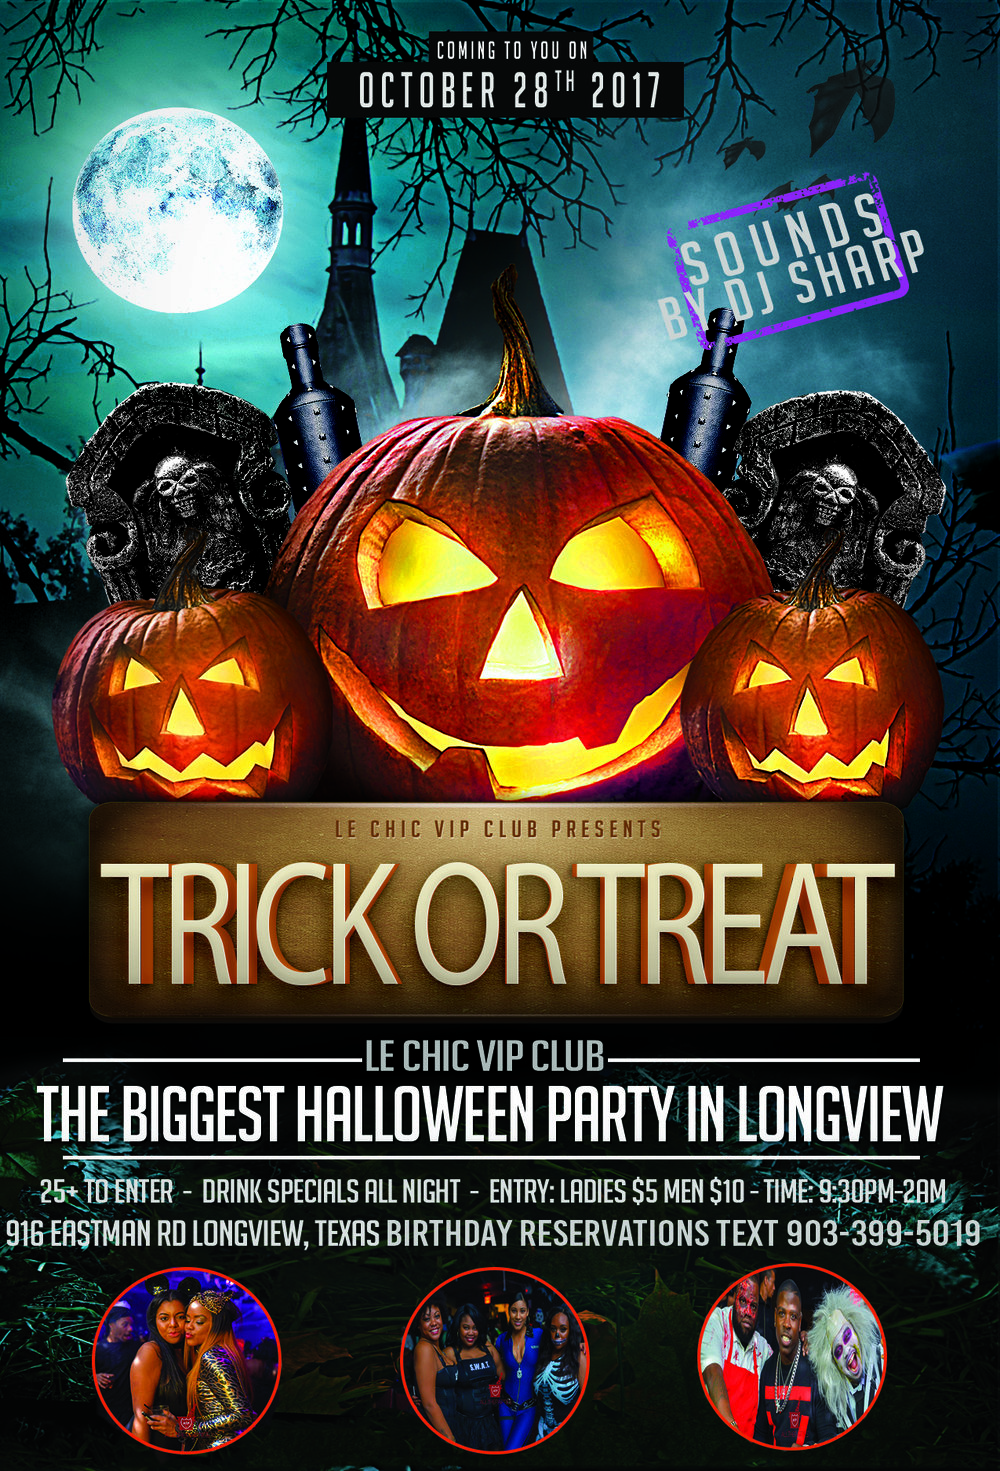 Halloween_Party_flyer_template_4X6 2 club.jpg